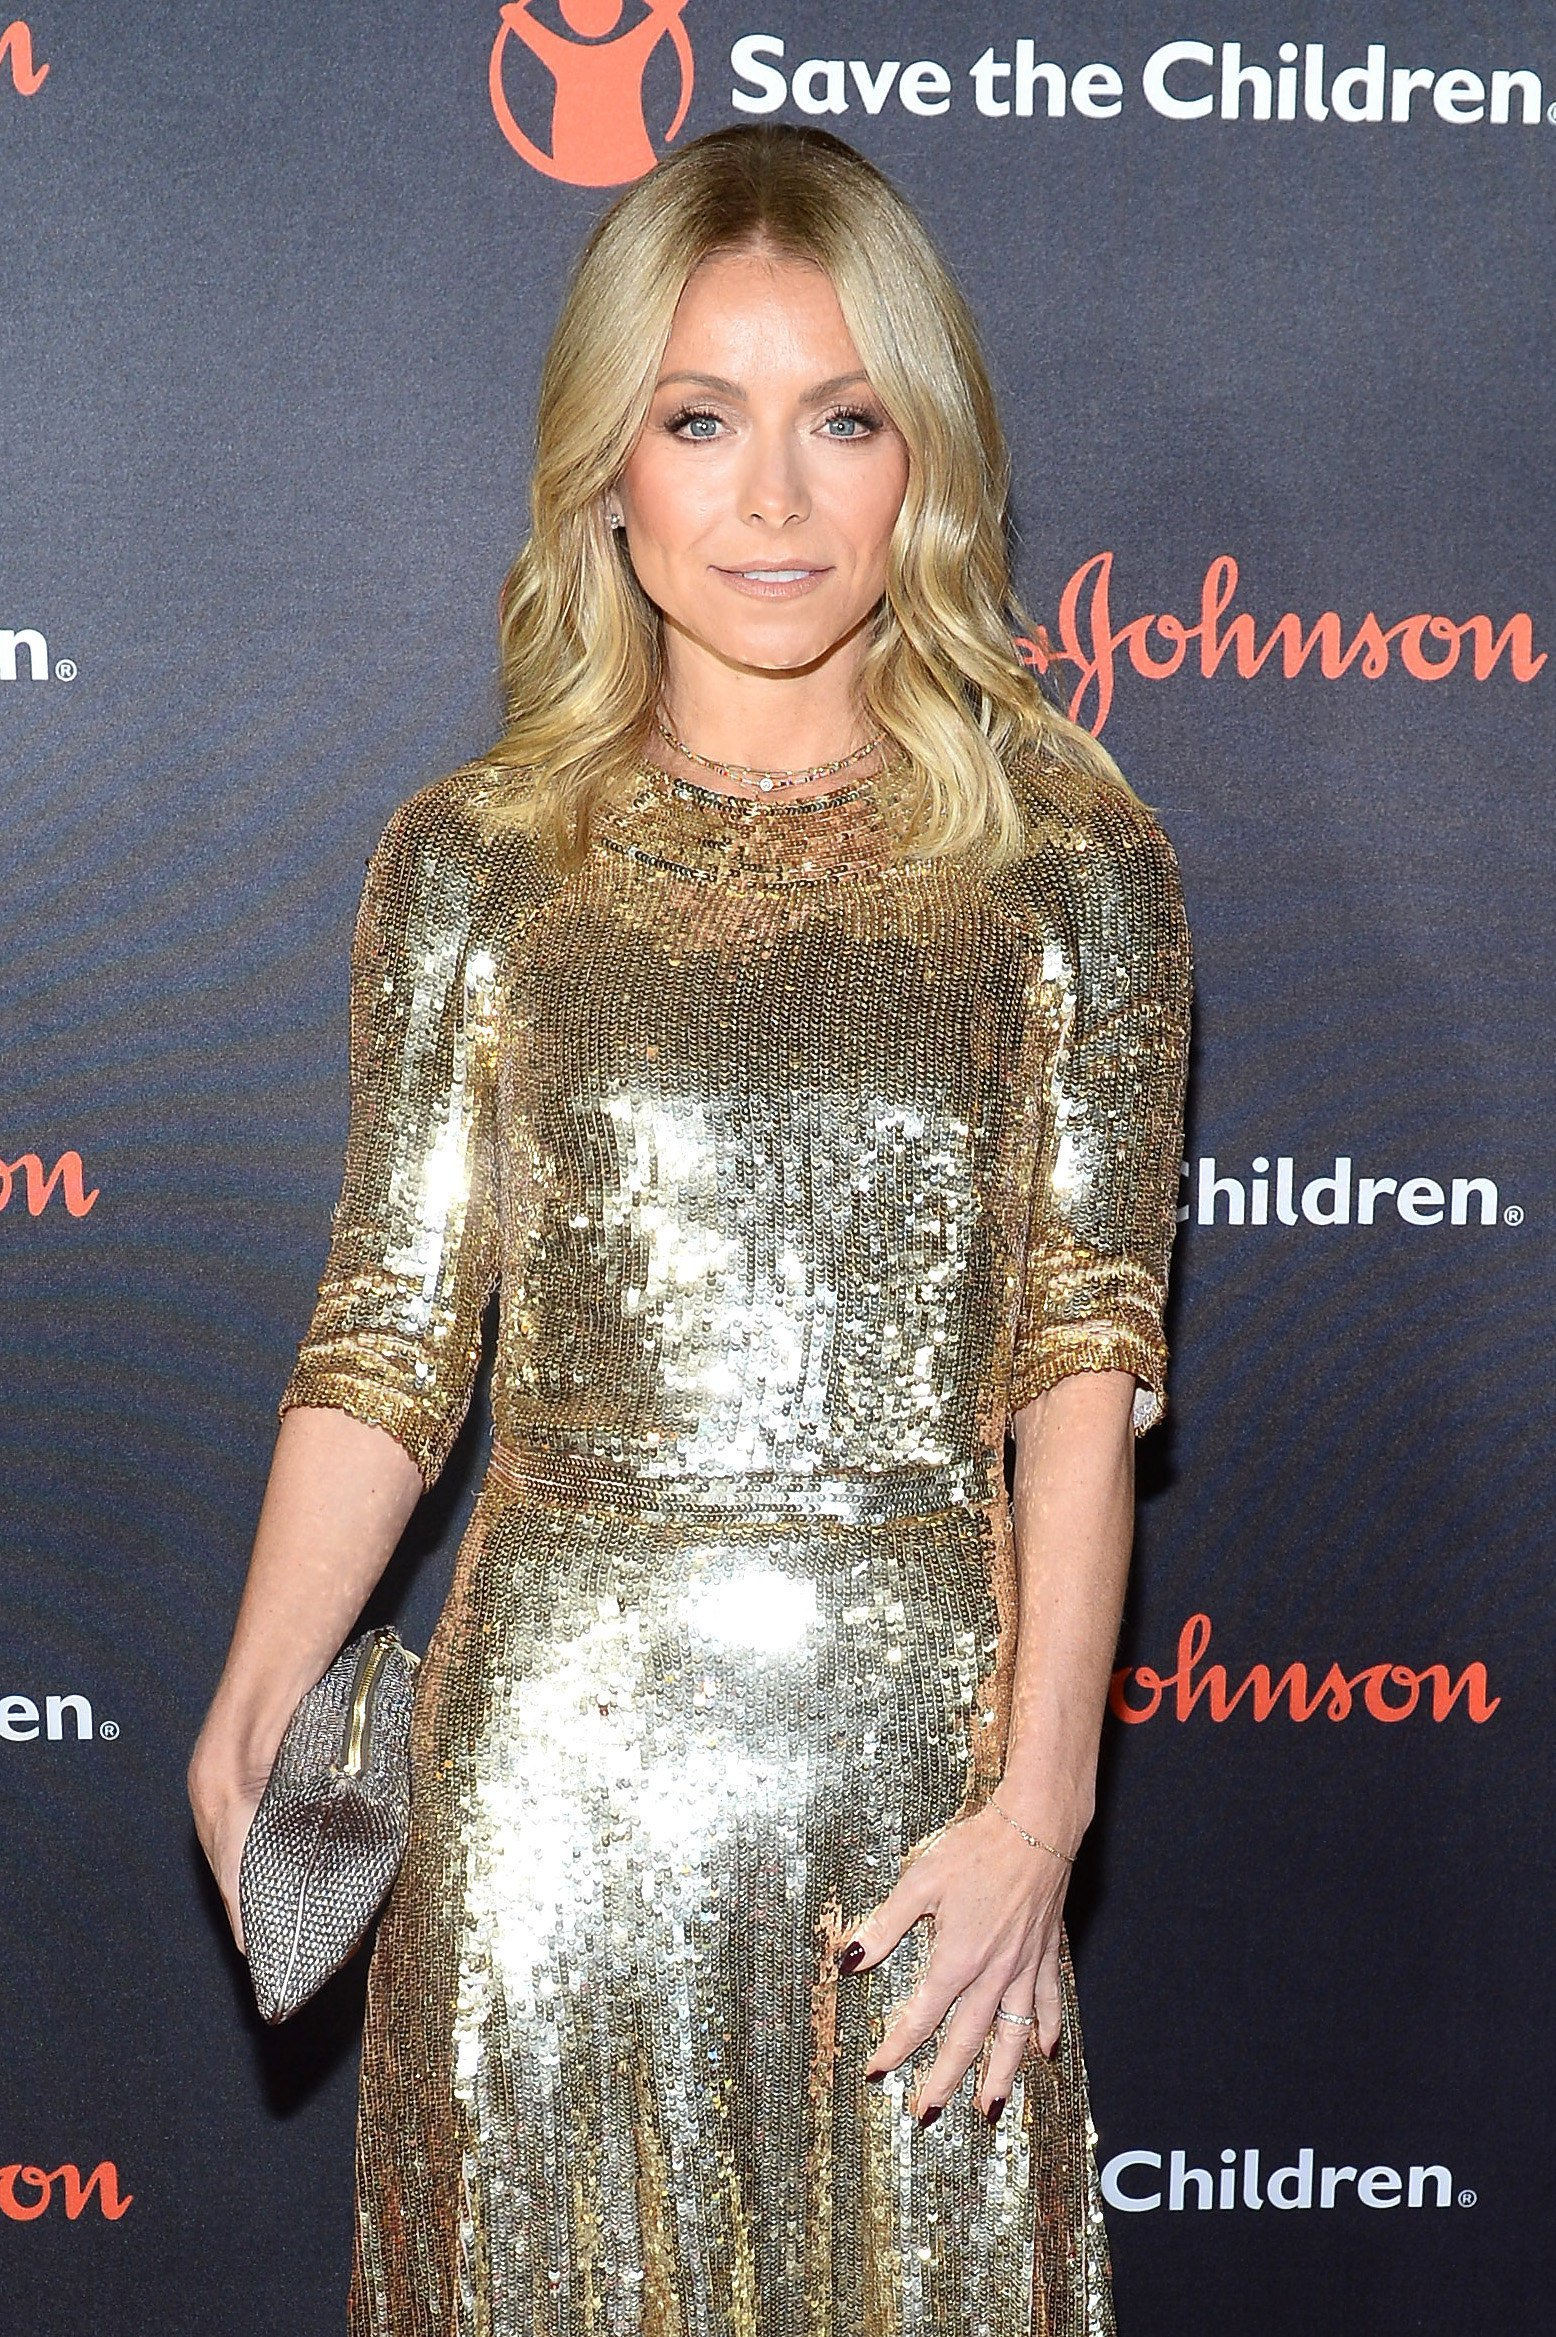 Kelly Ripa at the 6th Annual Save The Children Illumination Gala at the American Museum of Natural History on November 14, 2018 in New York City | Photo: Getty Images